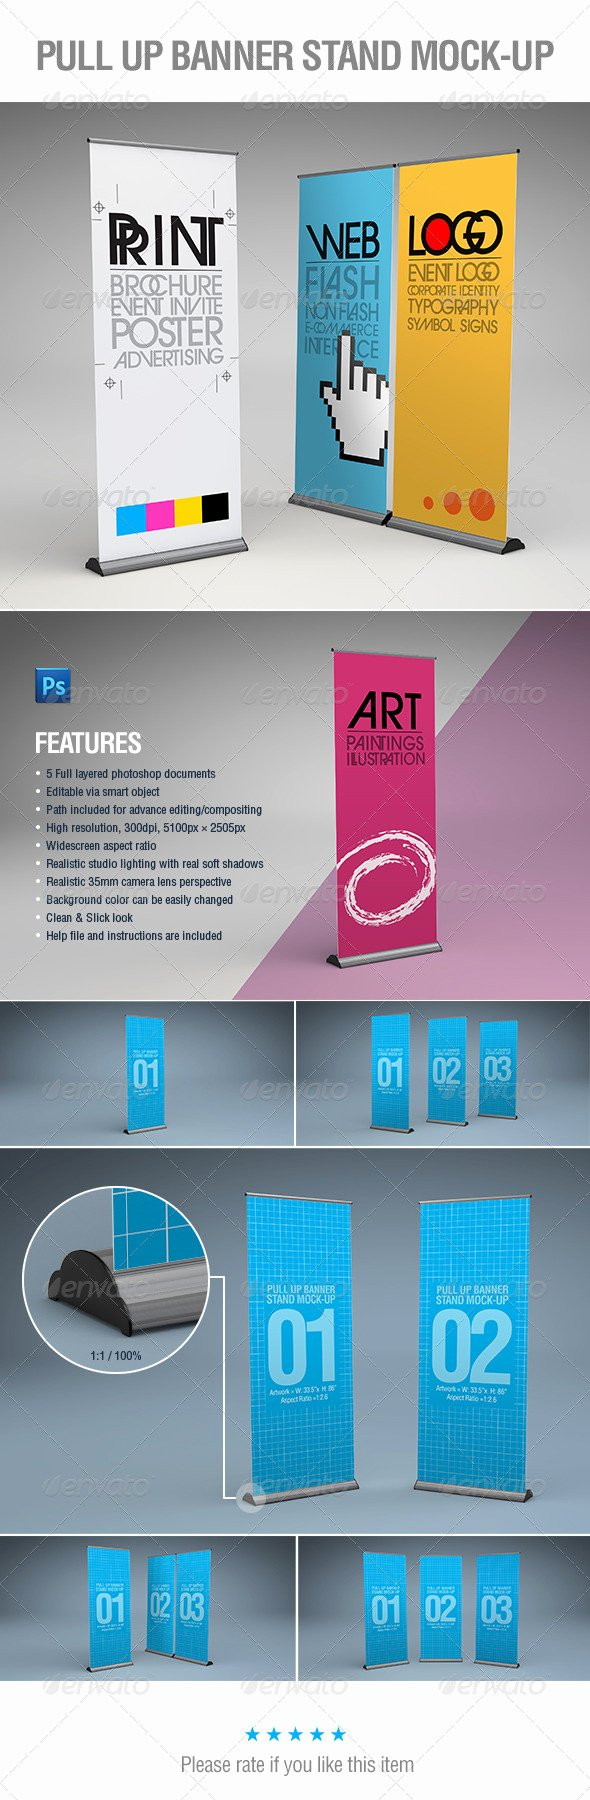 Pull Up Banner Template Luxury Presentation Template Graphicriver Pull Up Banner Stands